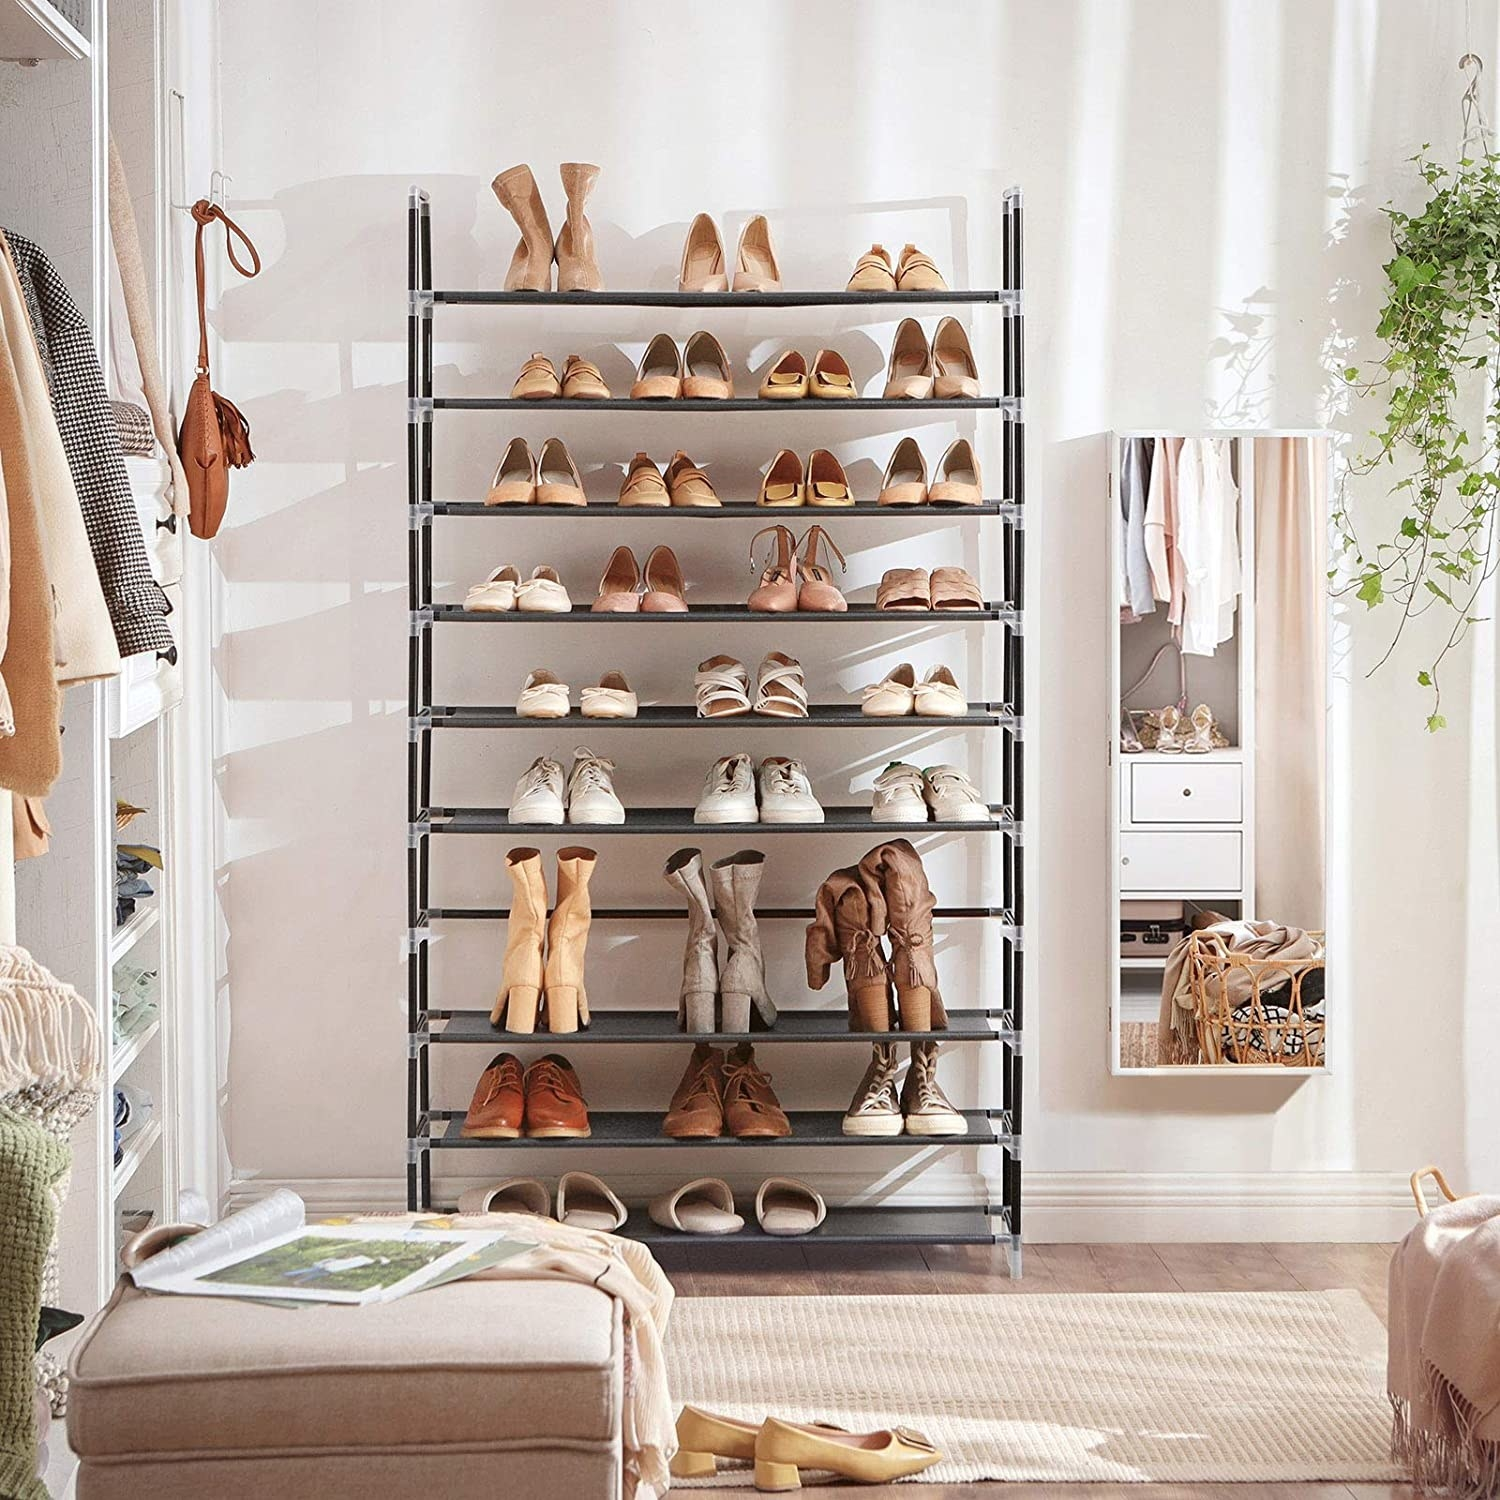 A shoe rack with ten shelves displaying shoes, slip-ons, and boots in a bedroom